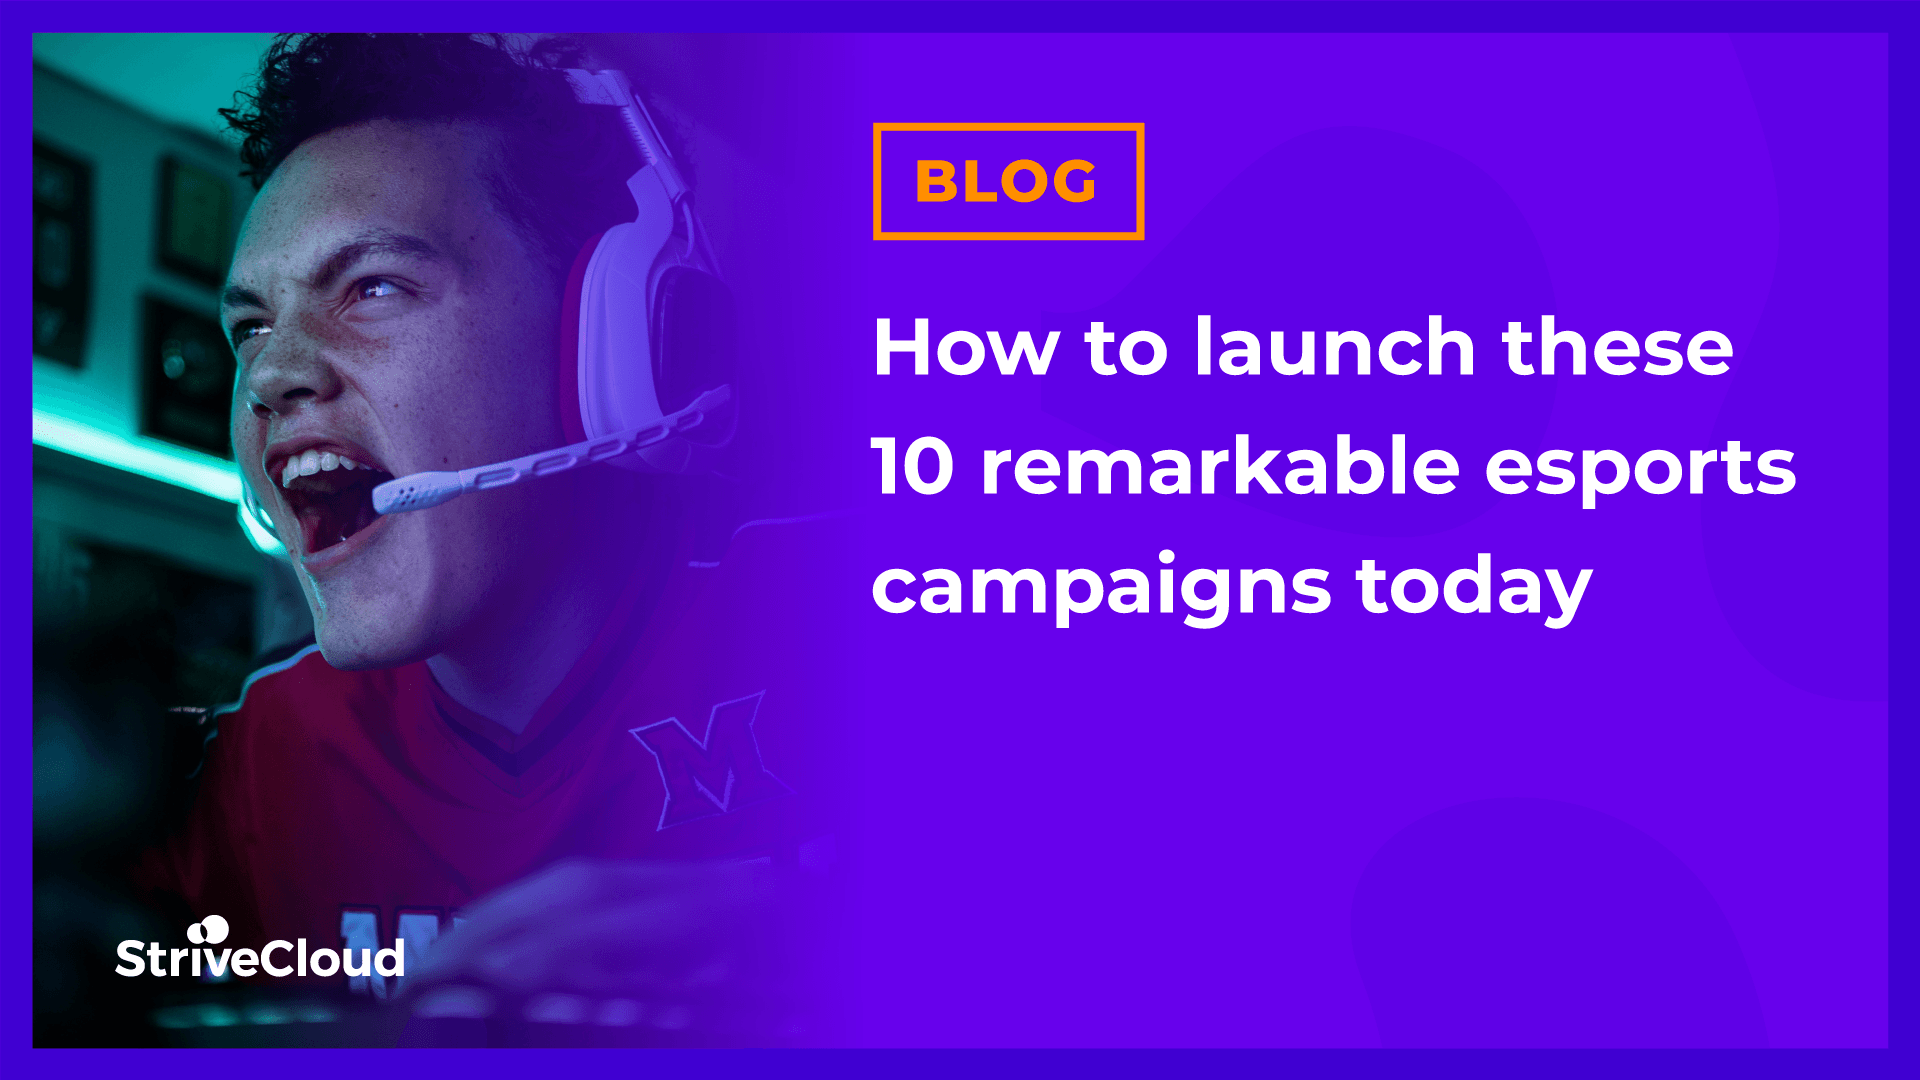 How to launch these 10 remarkable esports campaigns today